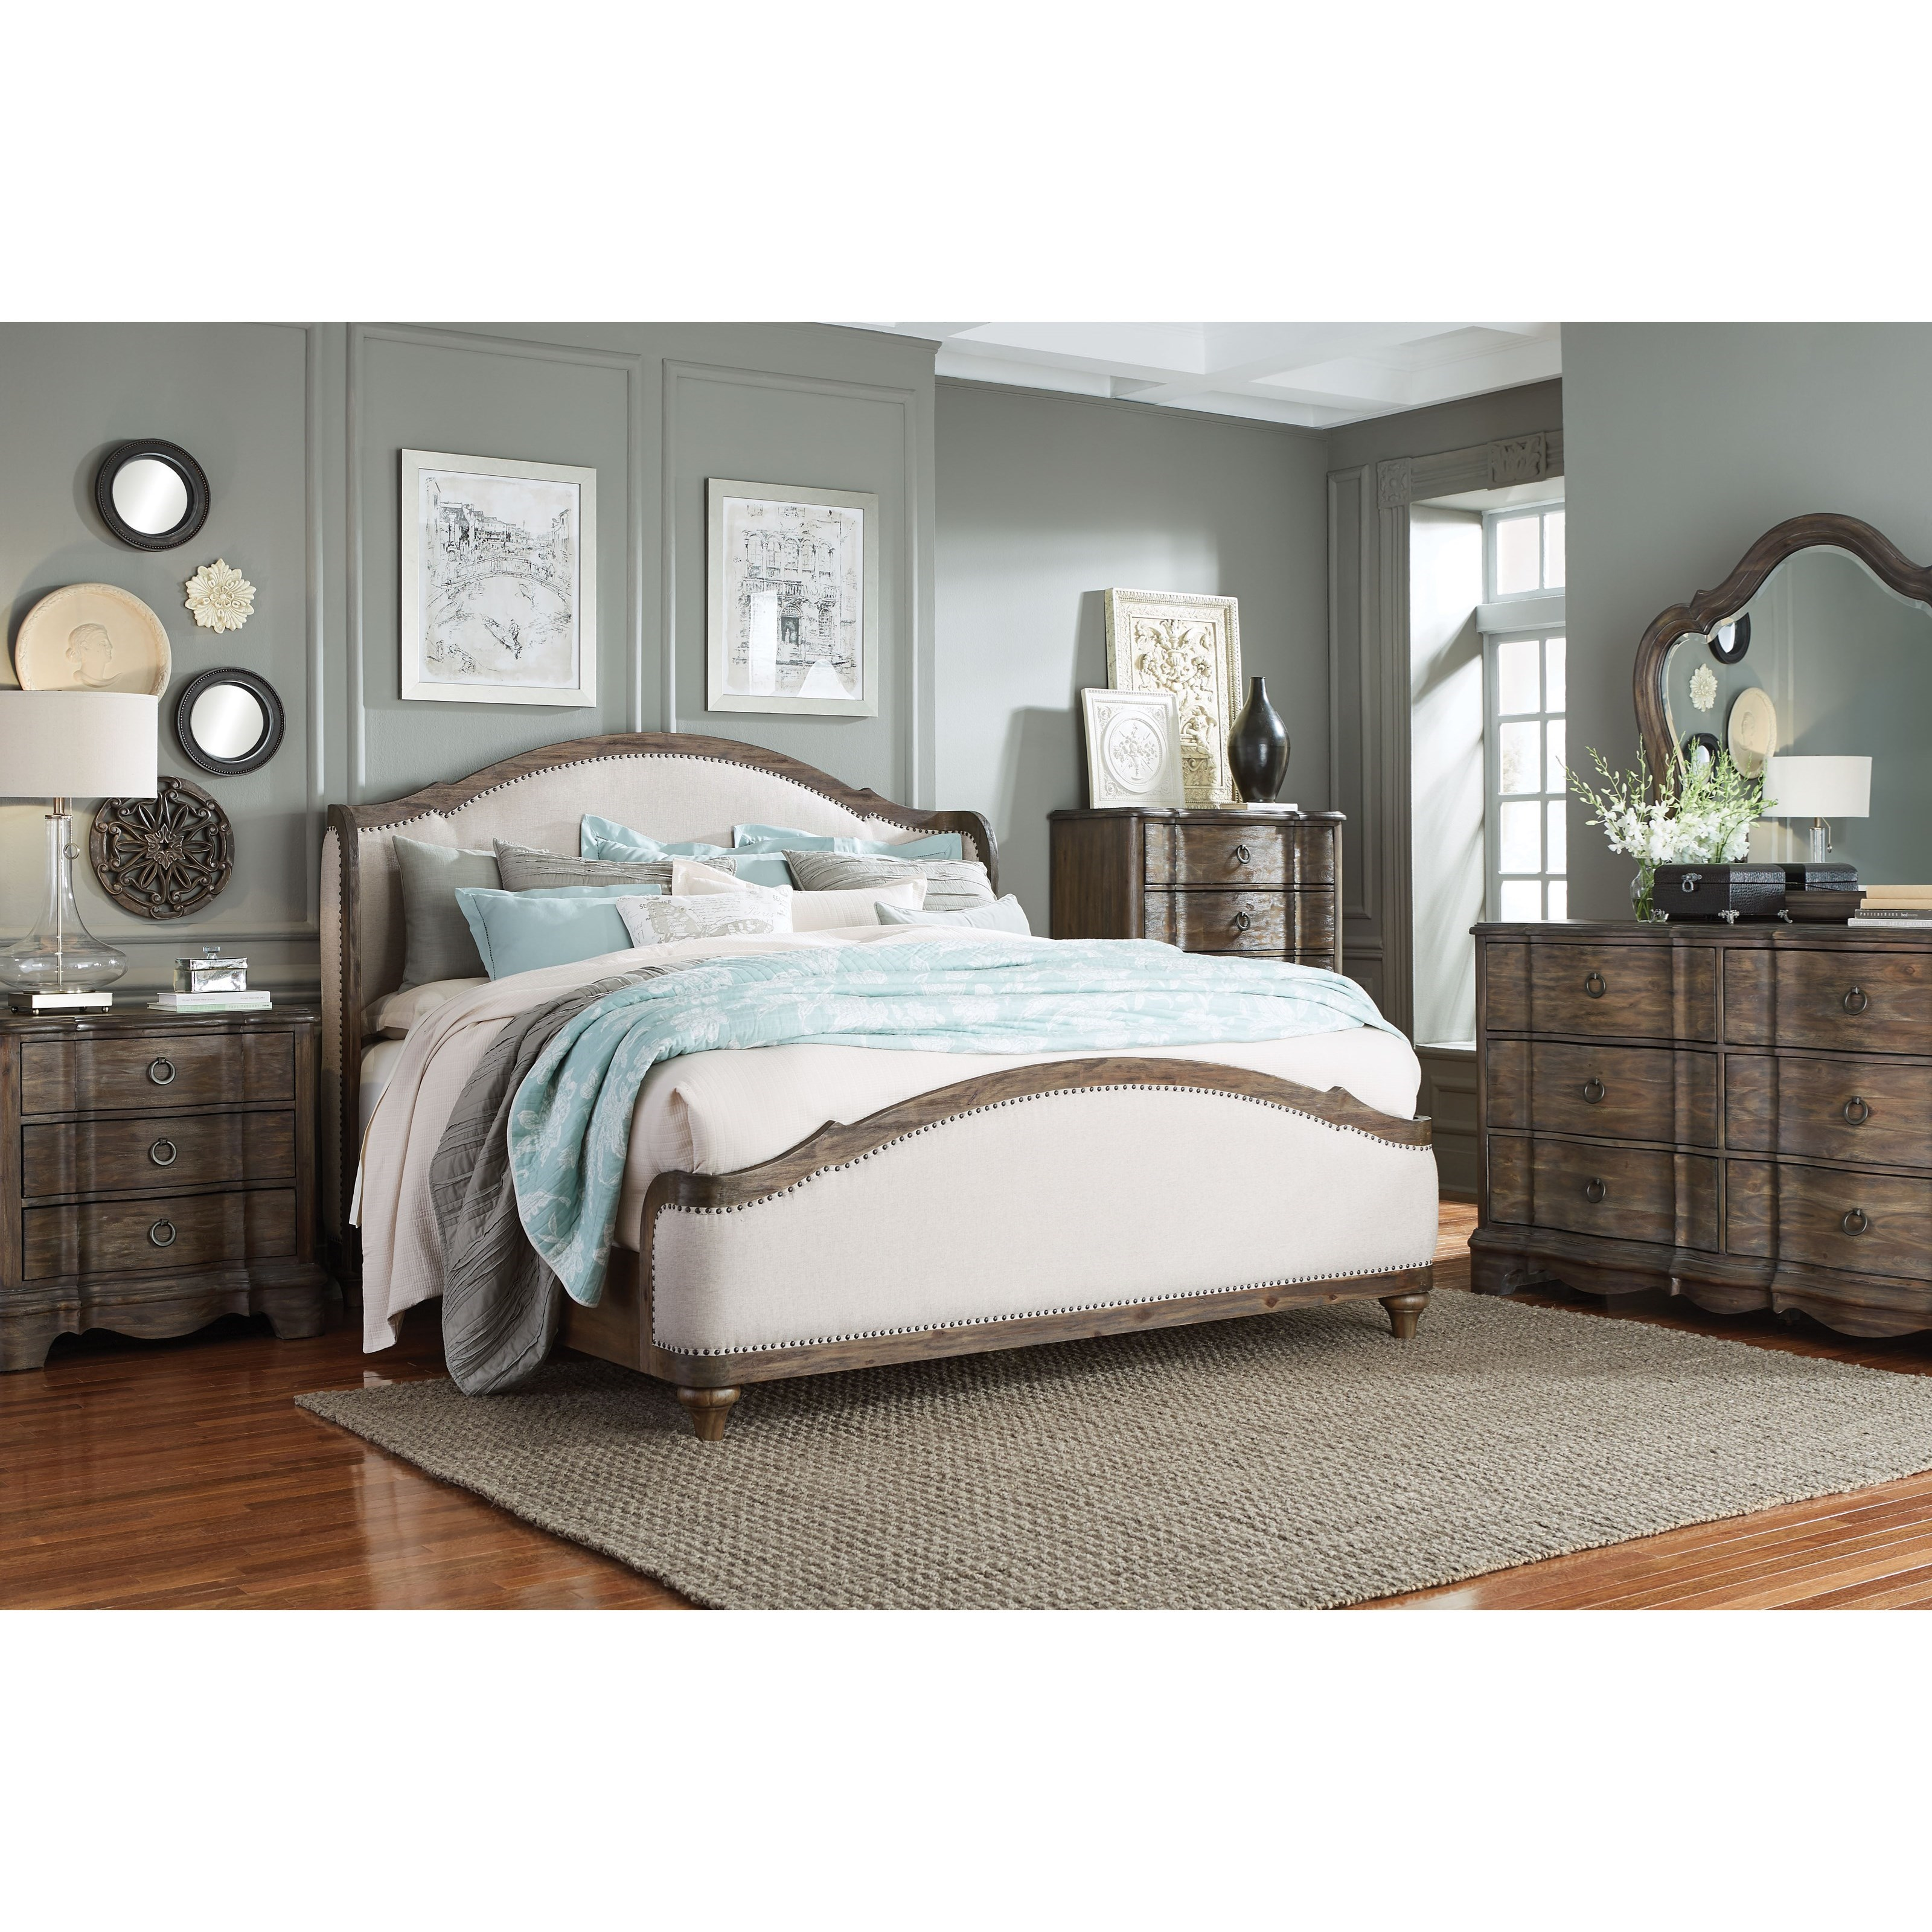 Standard Furniture Parliament Queen Bedroom Group - Item Number: 92350 Q Bedroom Group 1